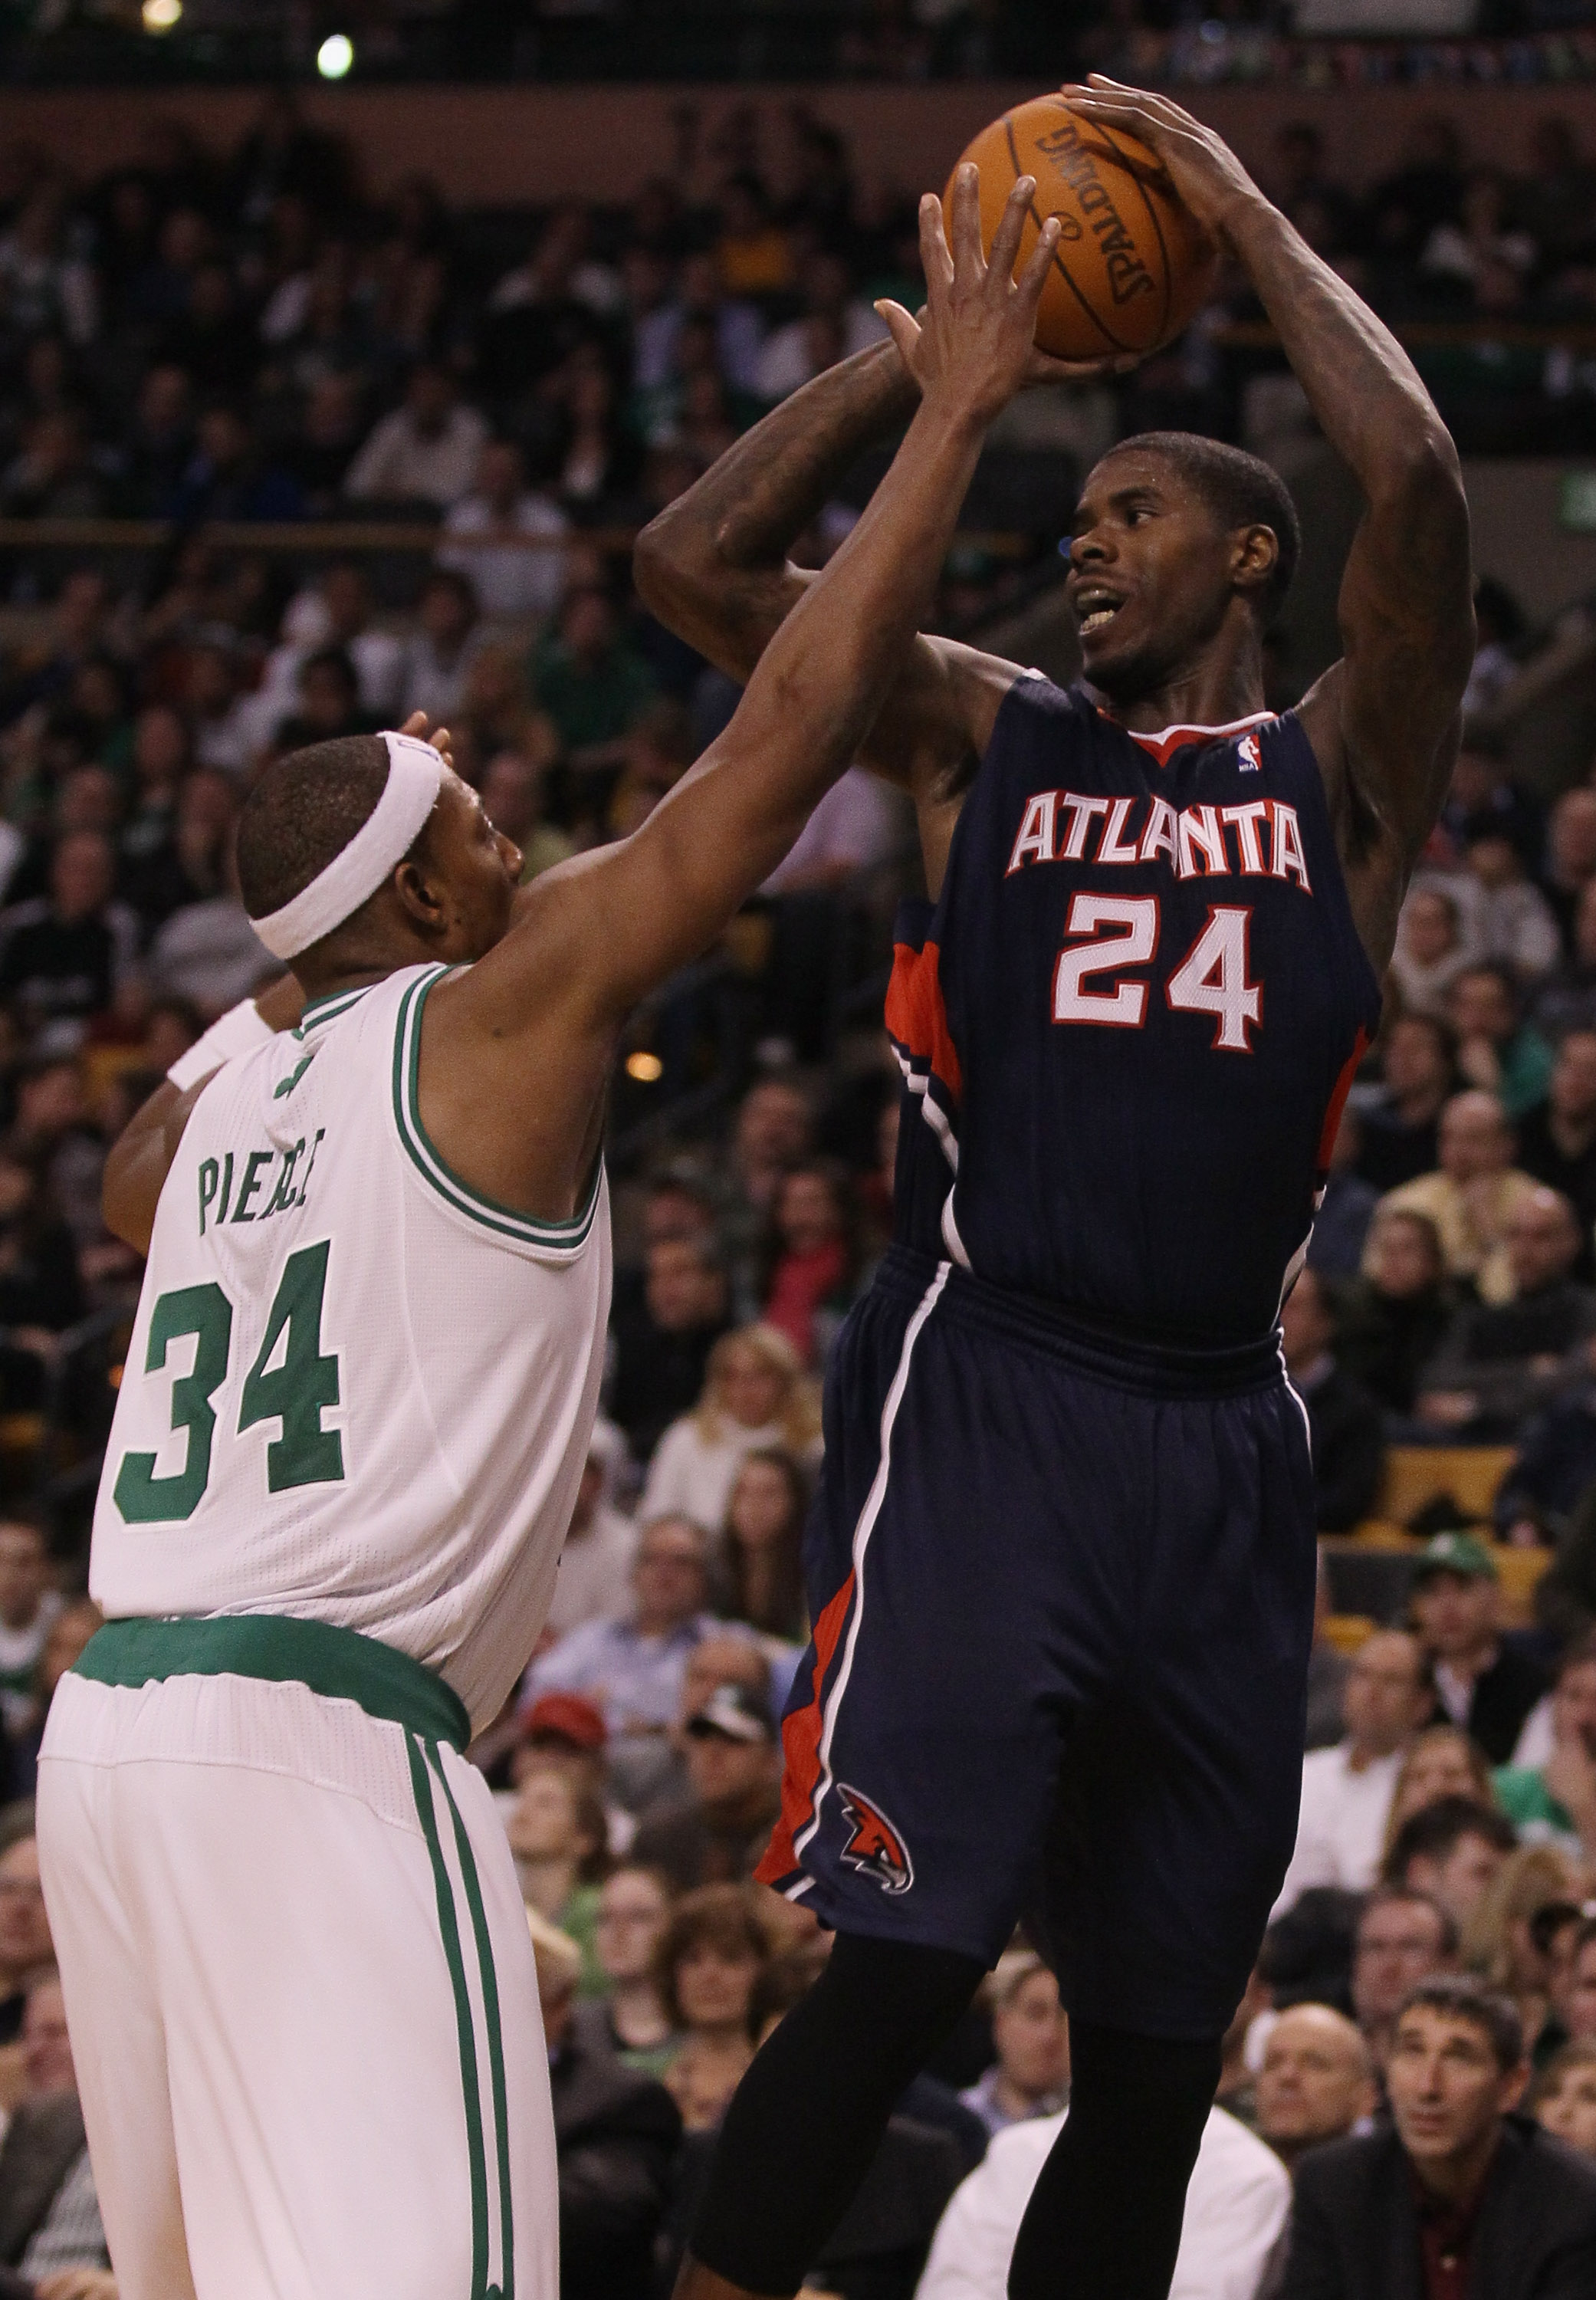 BOSTON, MA - DECEMBER 16:  Marvin Williams #24 of the Atlanta Hawks looks to pass as Paul Pierce #34 of the Boston Celtics defends on December 16, 2010 at the TD Garden in Boston, Massachusetts. The Celtics defeated the Hawks 102-90. NOTE TO USER: User ex